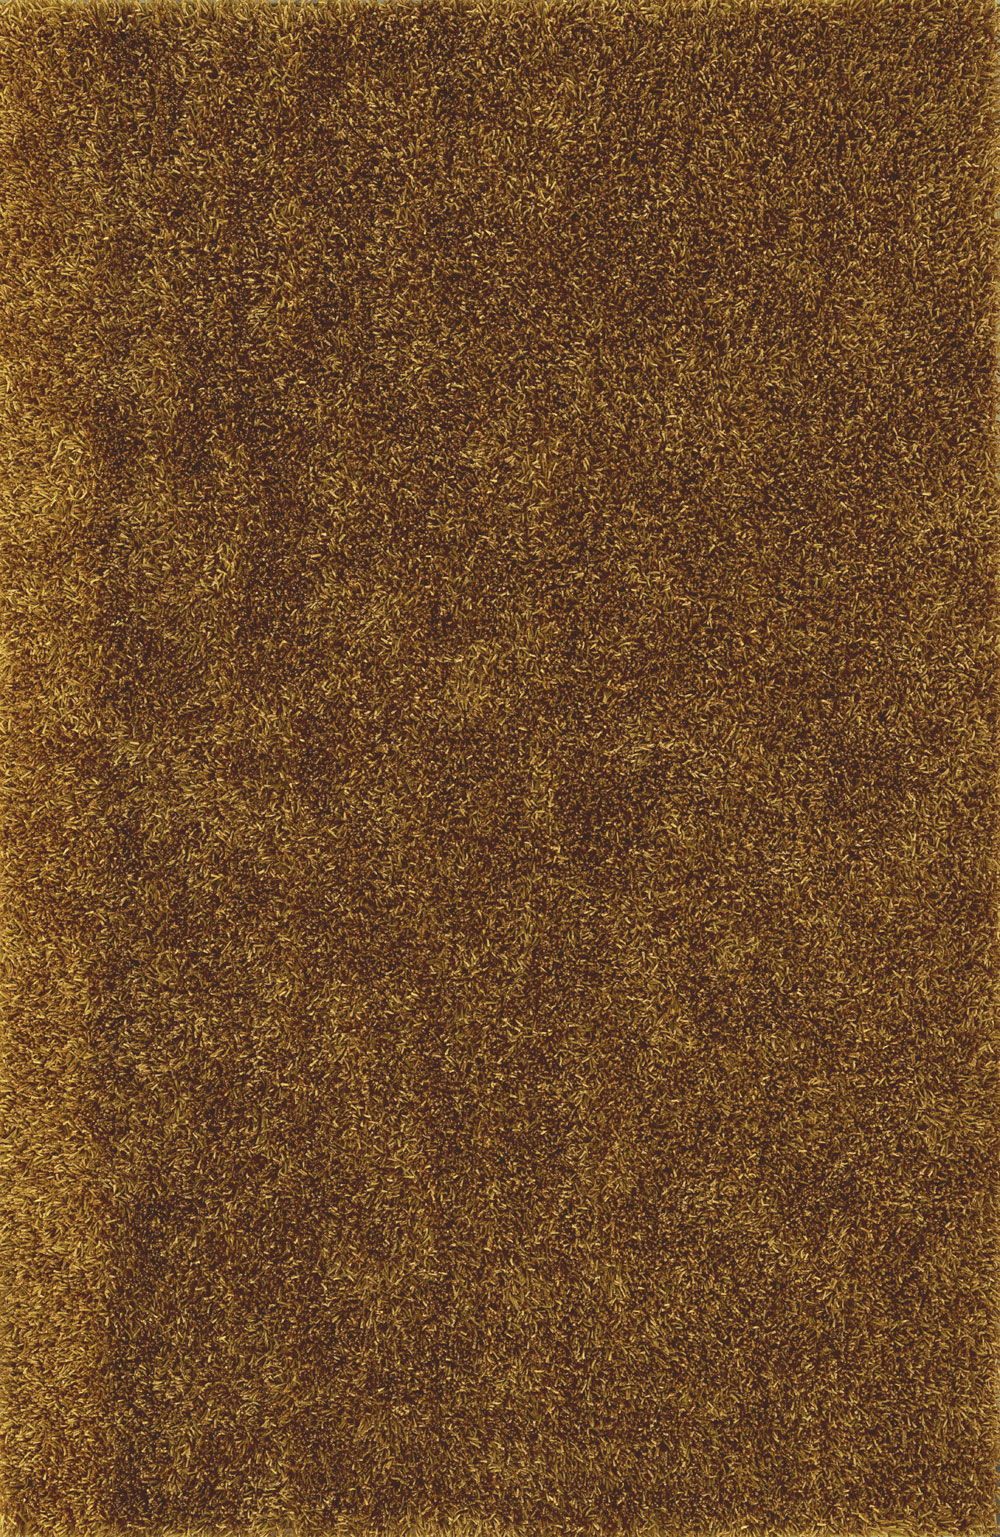 Dalyn Illusions IL69 Gold Rug